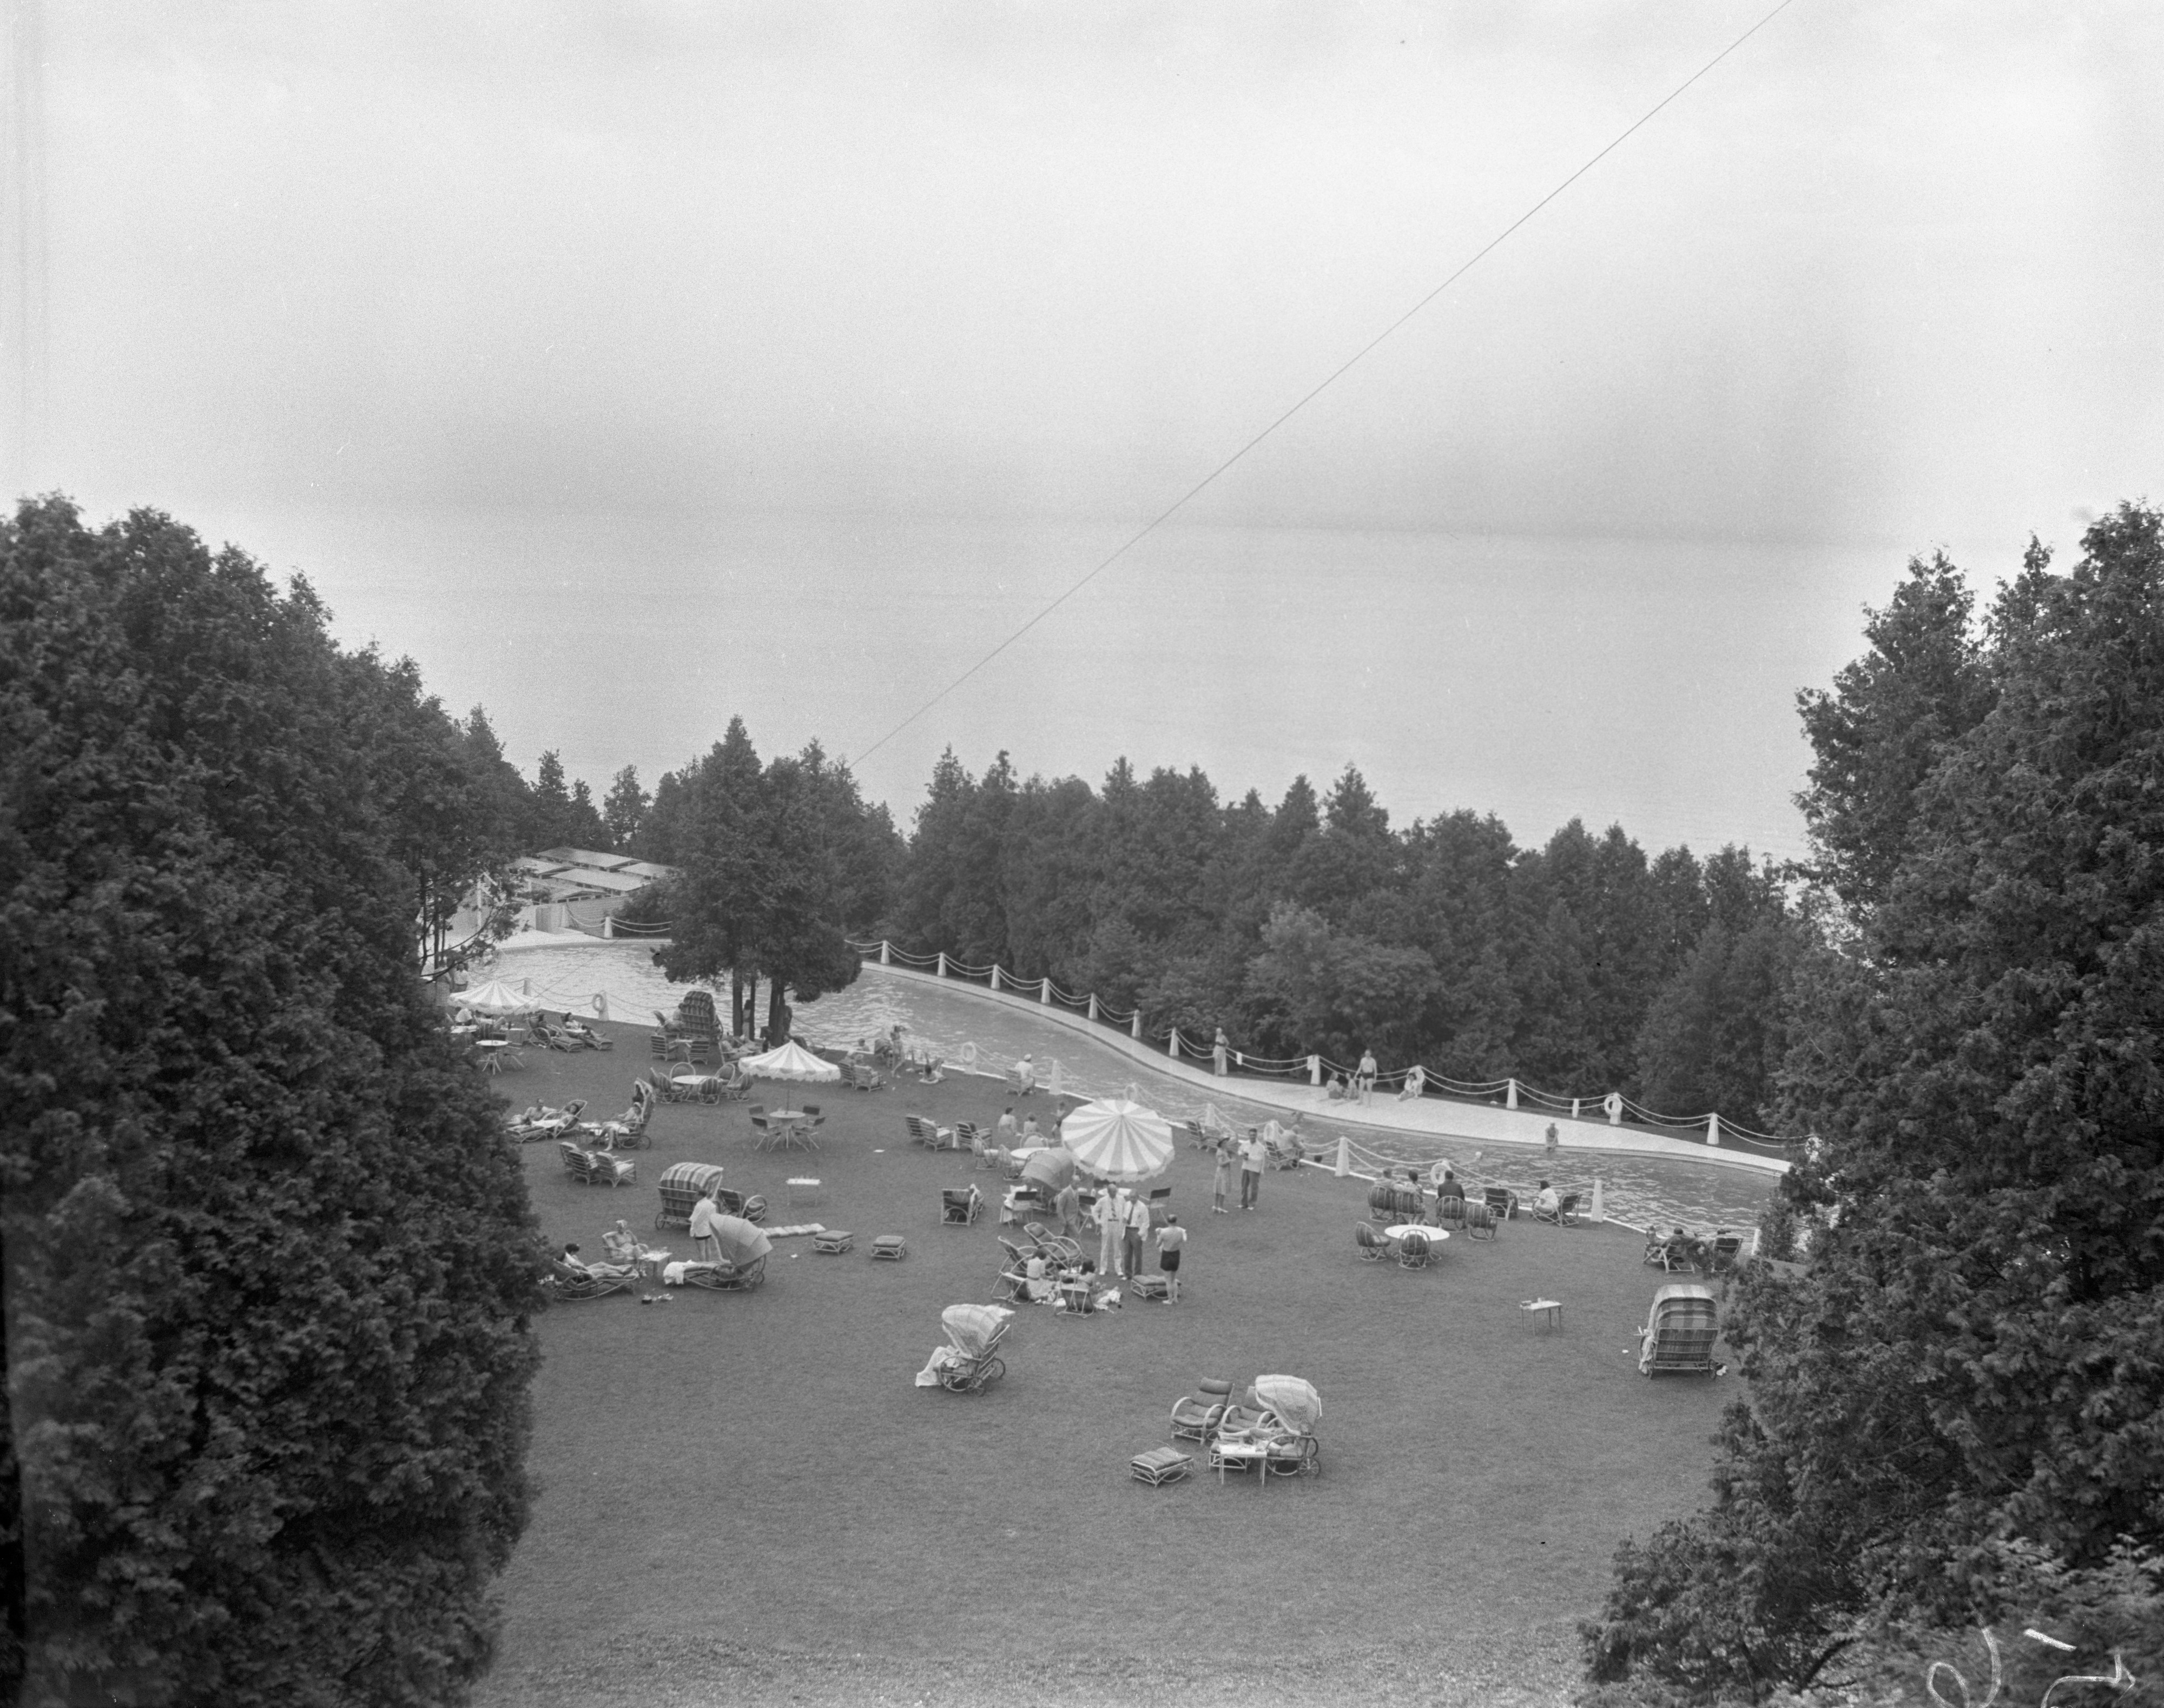 View Of A Pool On Mackinac Island image